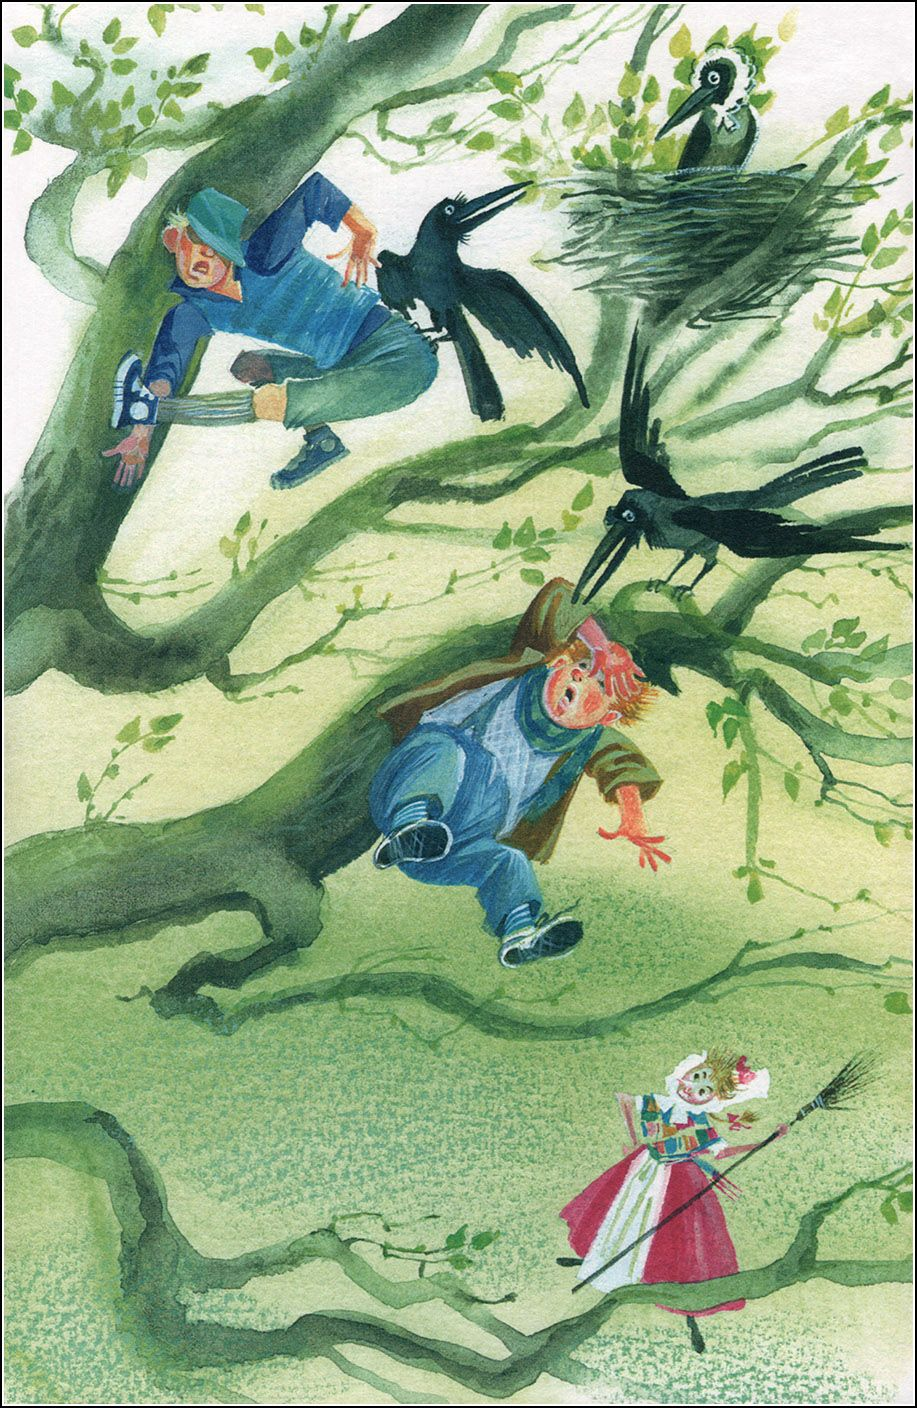 The Little Witch by Otfried Preussler. Illustrations by Nika Goltz